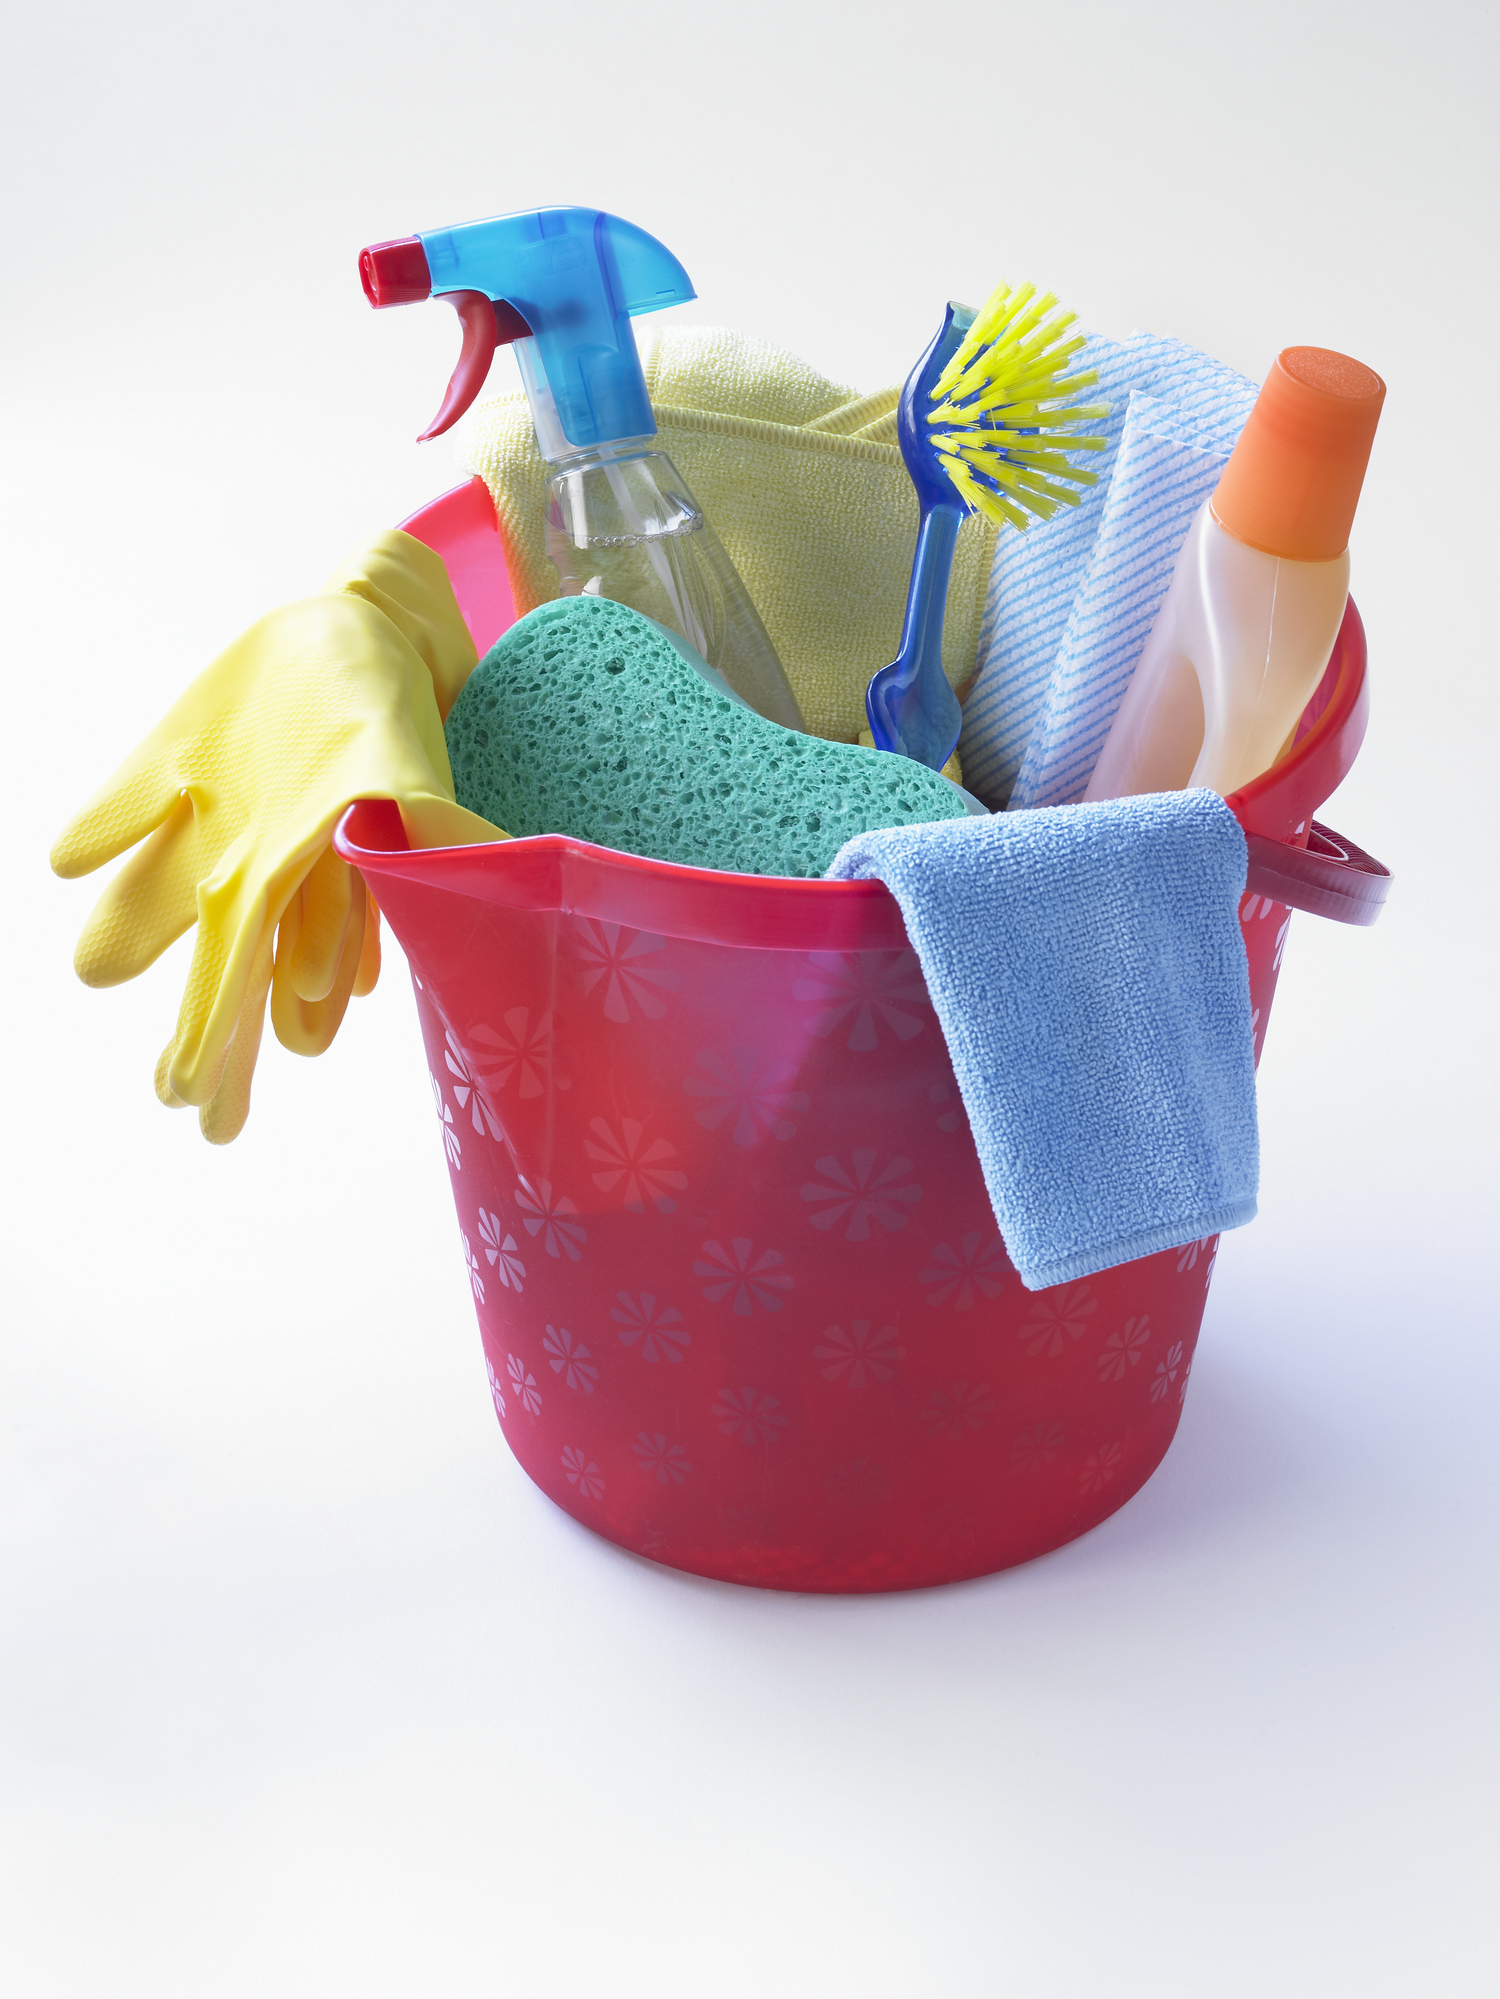 Pink plastic bucket containing cleaning products, including cloths, sponge, and disinfectant bottles